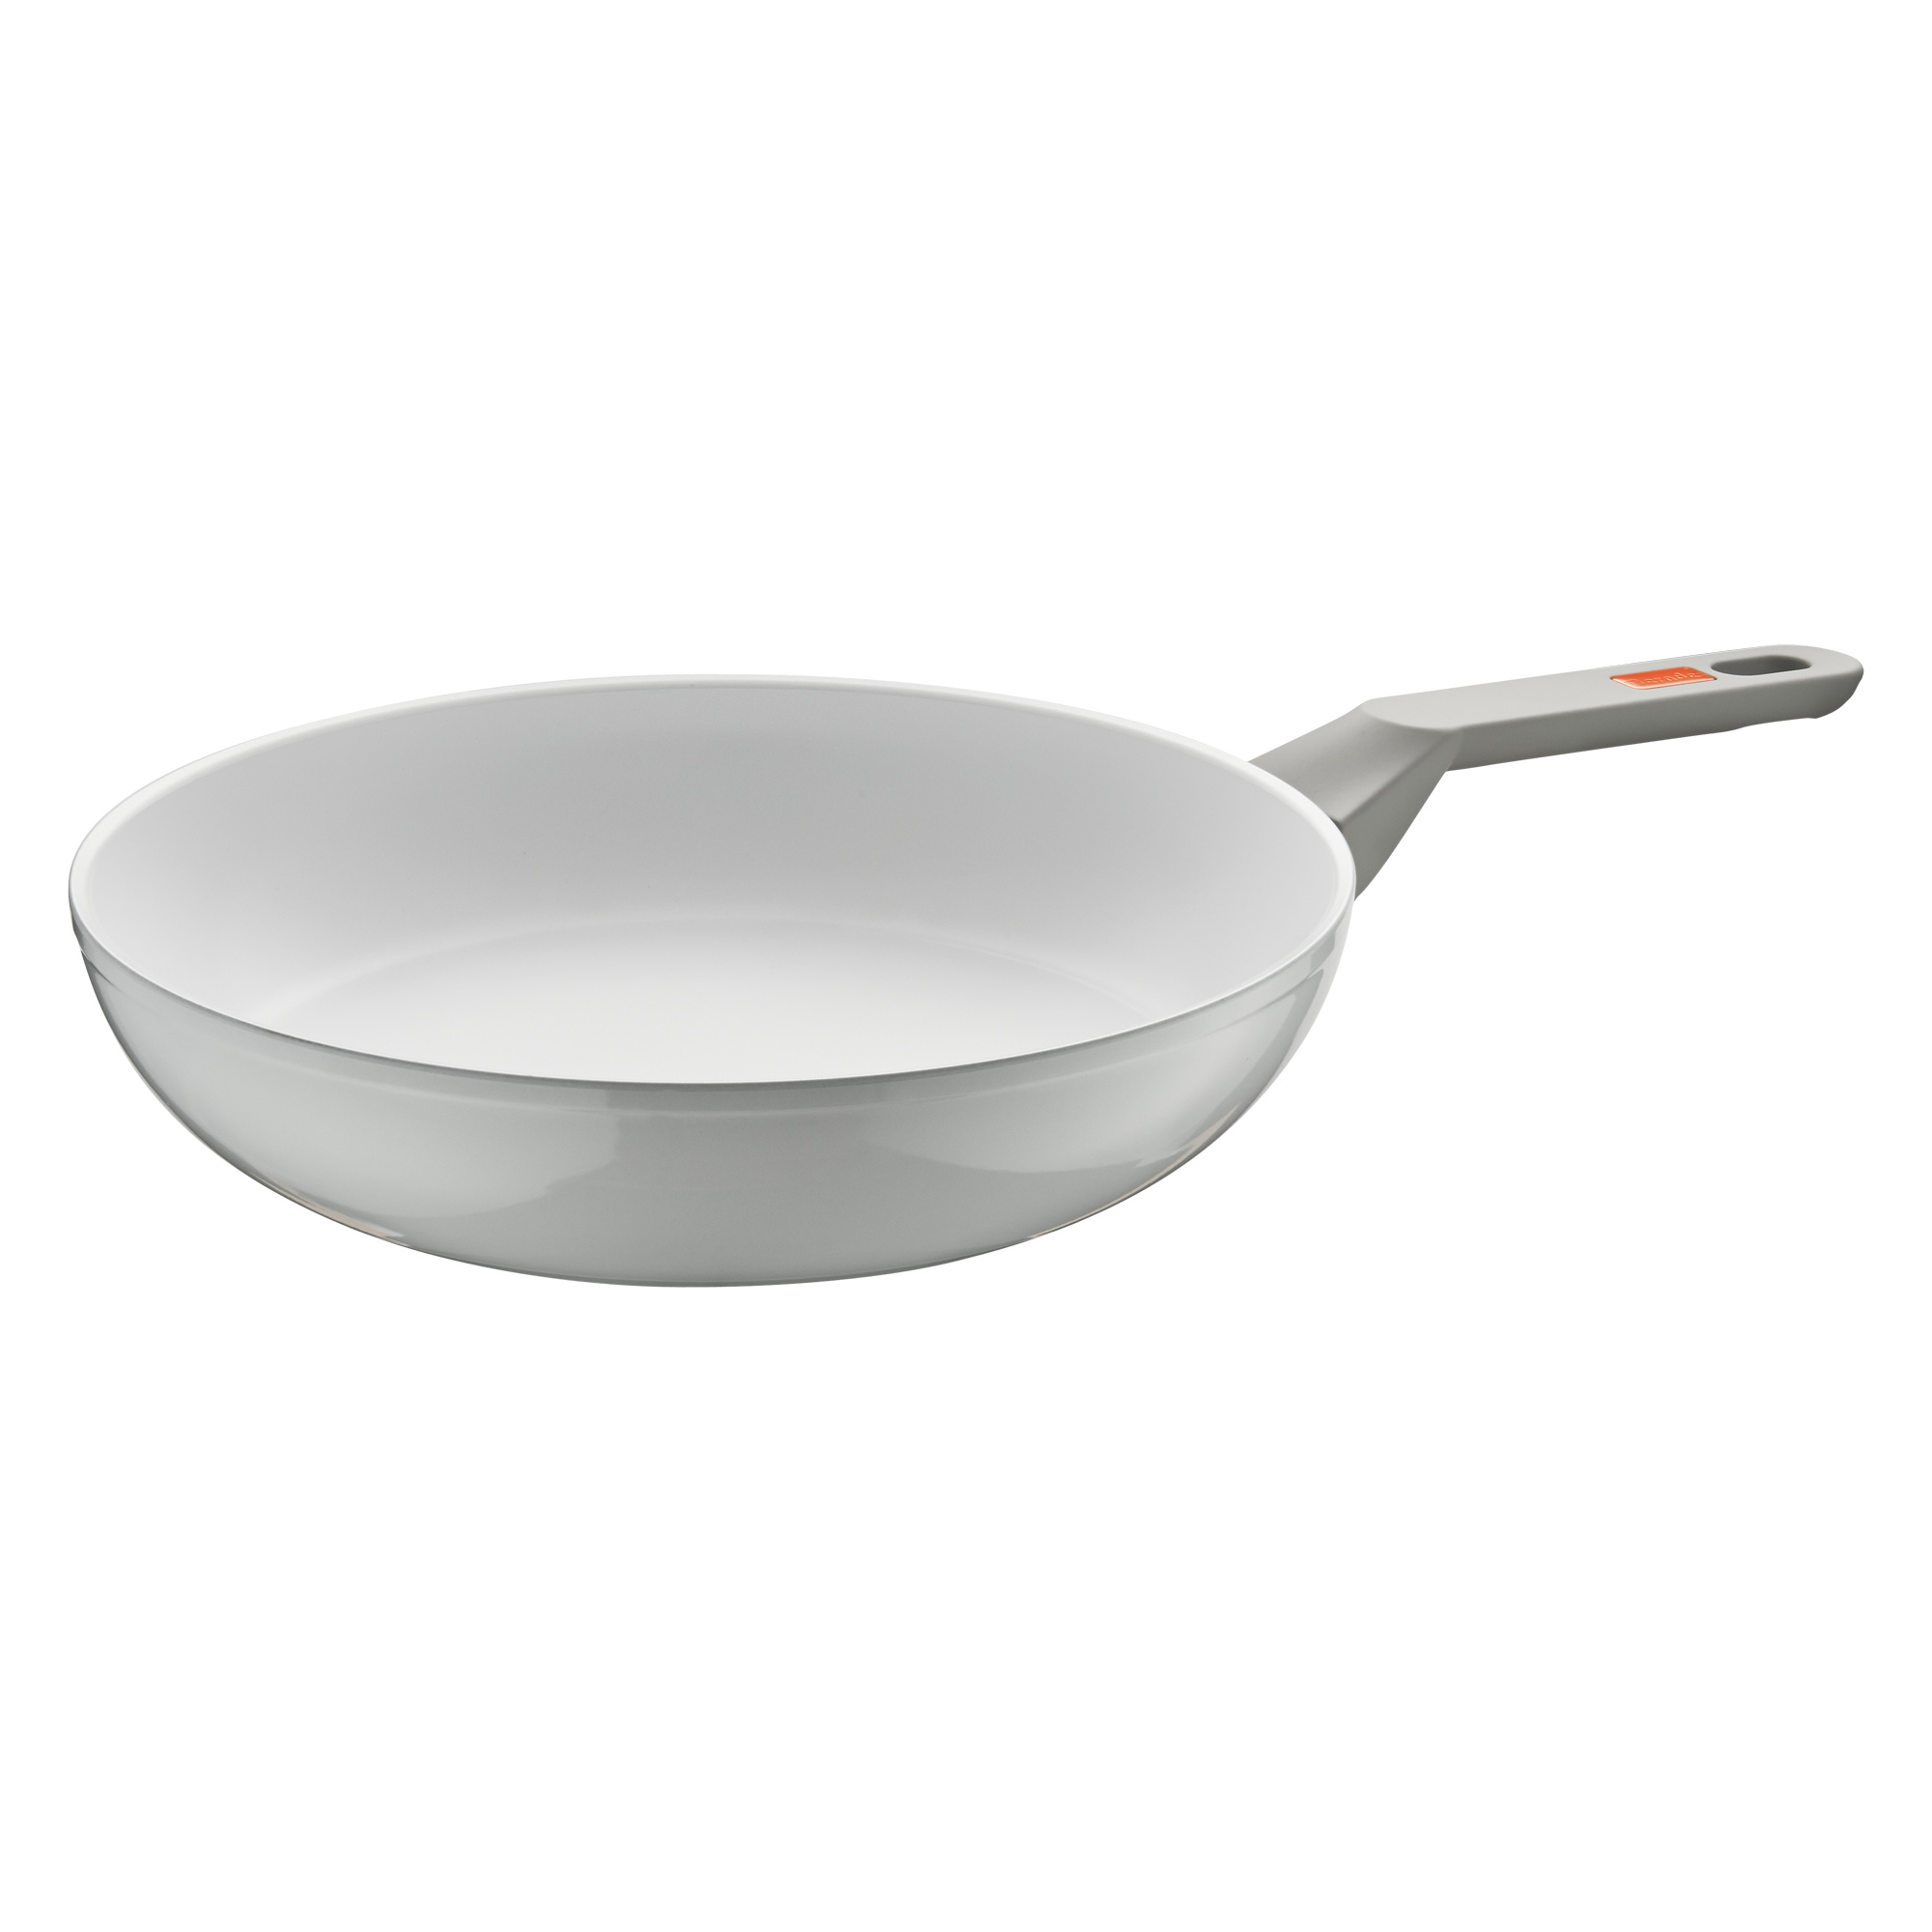 Berndes Schmorpfanne Veggie White Induction 28 cm